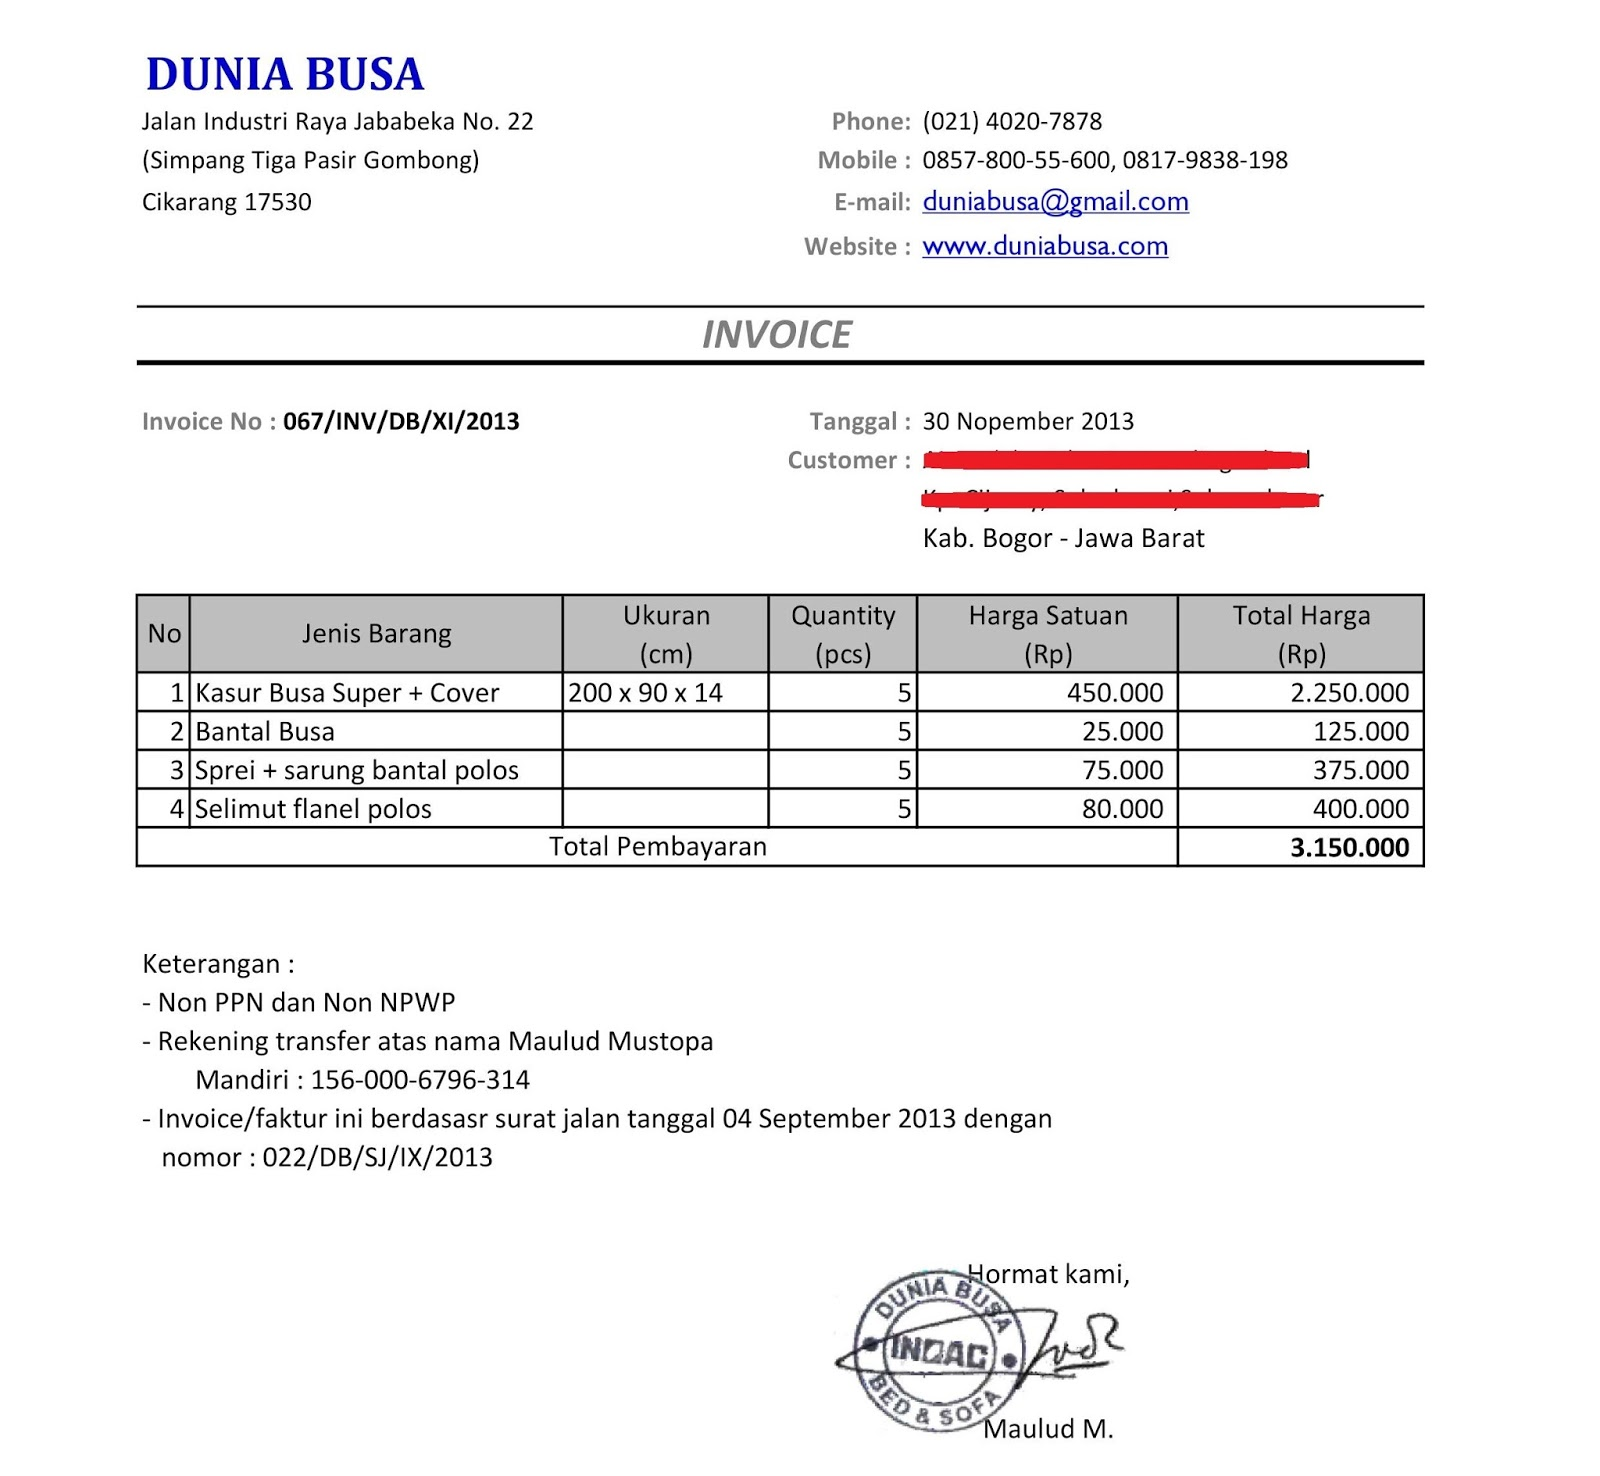 Totallocalus  Outstanding Free Invoice Online  Create Invoice Online  Invoice Template  With Goodlooking Contoh Format Invoice Atau Surat Tagihan  Brankas Arsip  Free Invoice Online With Divine Microsoft Excel Invoice Template Free Also How To Find Invoice Price In Addition Samples Of Invoices And Electronic Invoices As Well As Invoice Download Additionally Online Invoice Creator From Sklepco With Totallocalus  Goodlooking Free Invoice Online  Create Invoice Online  Invoice Template  With Divine Contoh Format Invoice Atau Surat Tagihan  Brankas Arsip  Free Invoice Online And Outstanding Microsoft Excel Invoice Template Free Also How To Find Invoice Price In Addition Samples Of Invoices From Sklepco